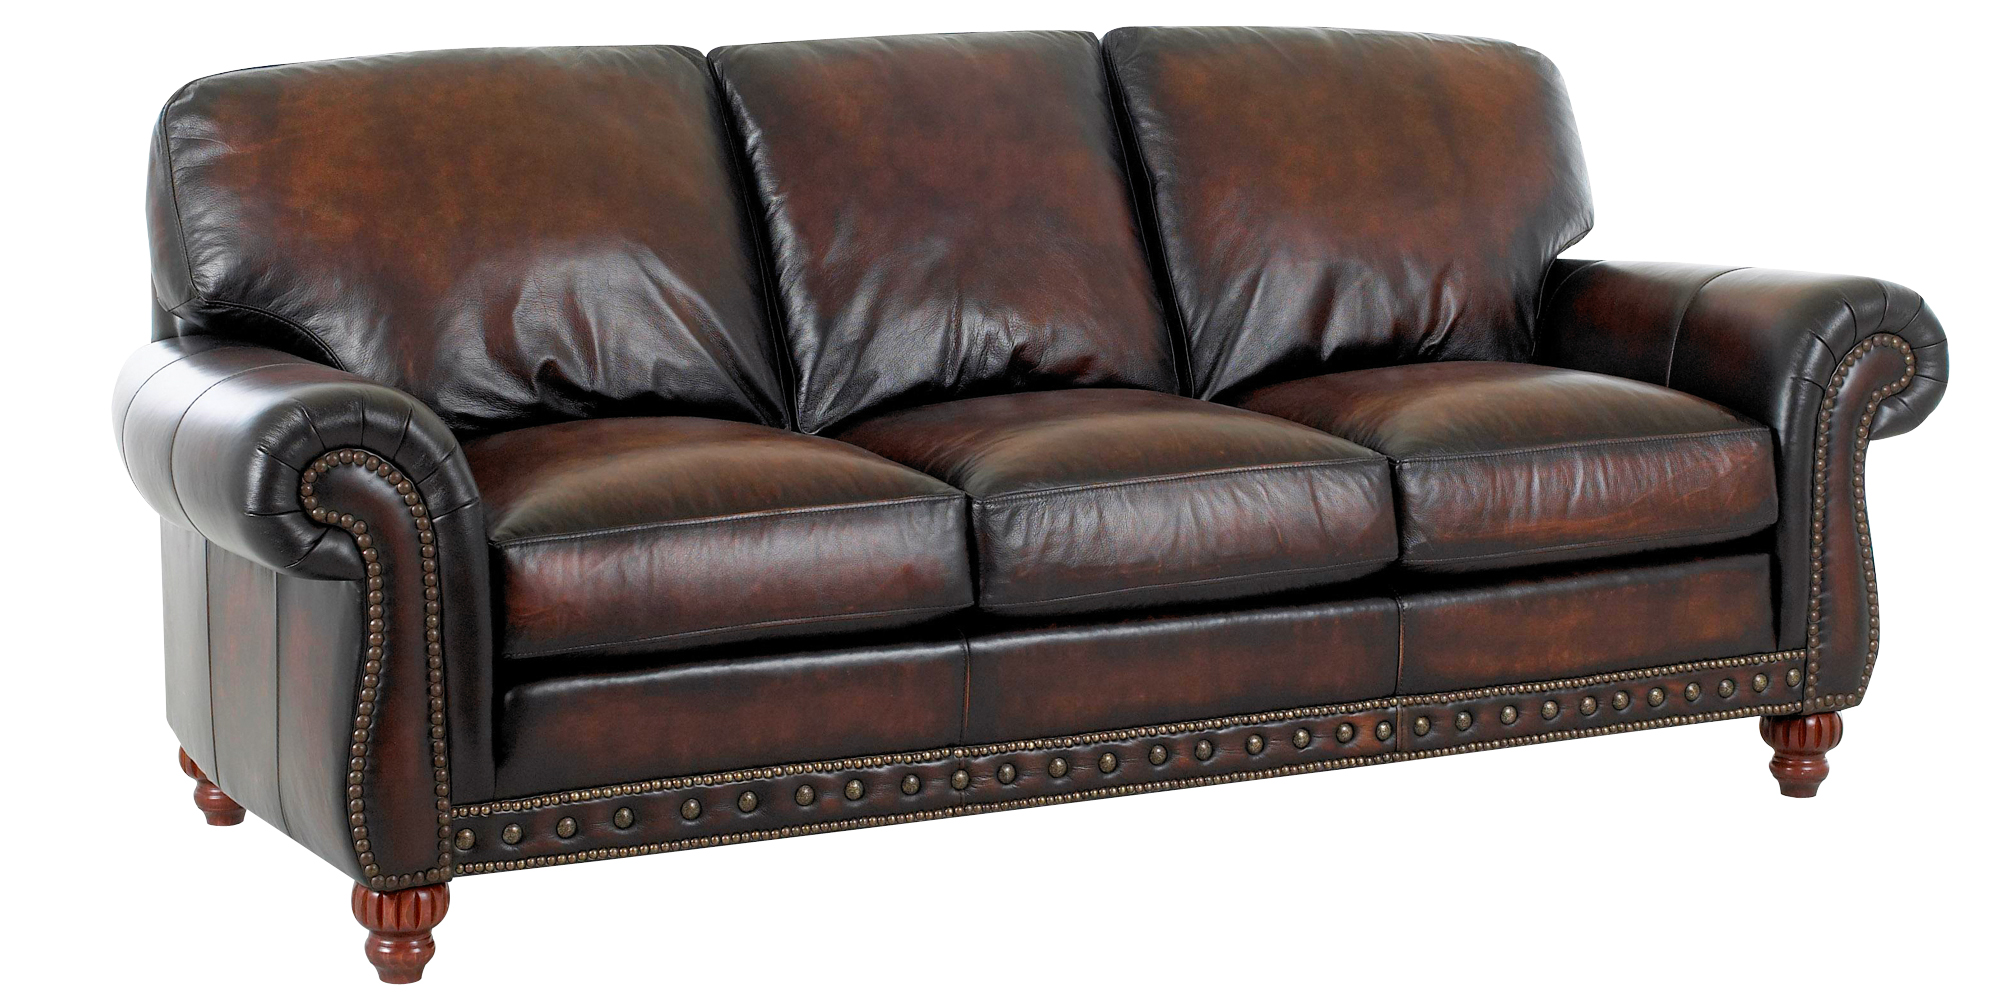 Leather Sofa Sets For Living Room Traditional European Old World Leather Sofa Set Club Furniture